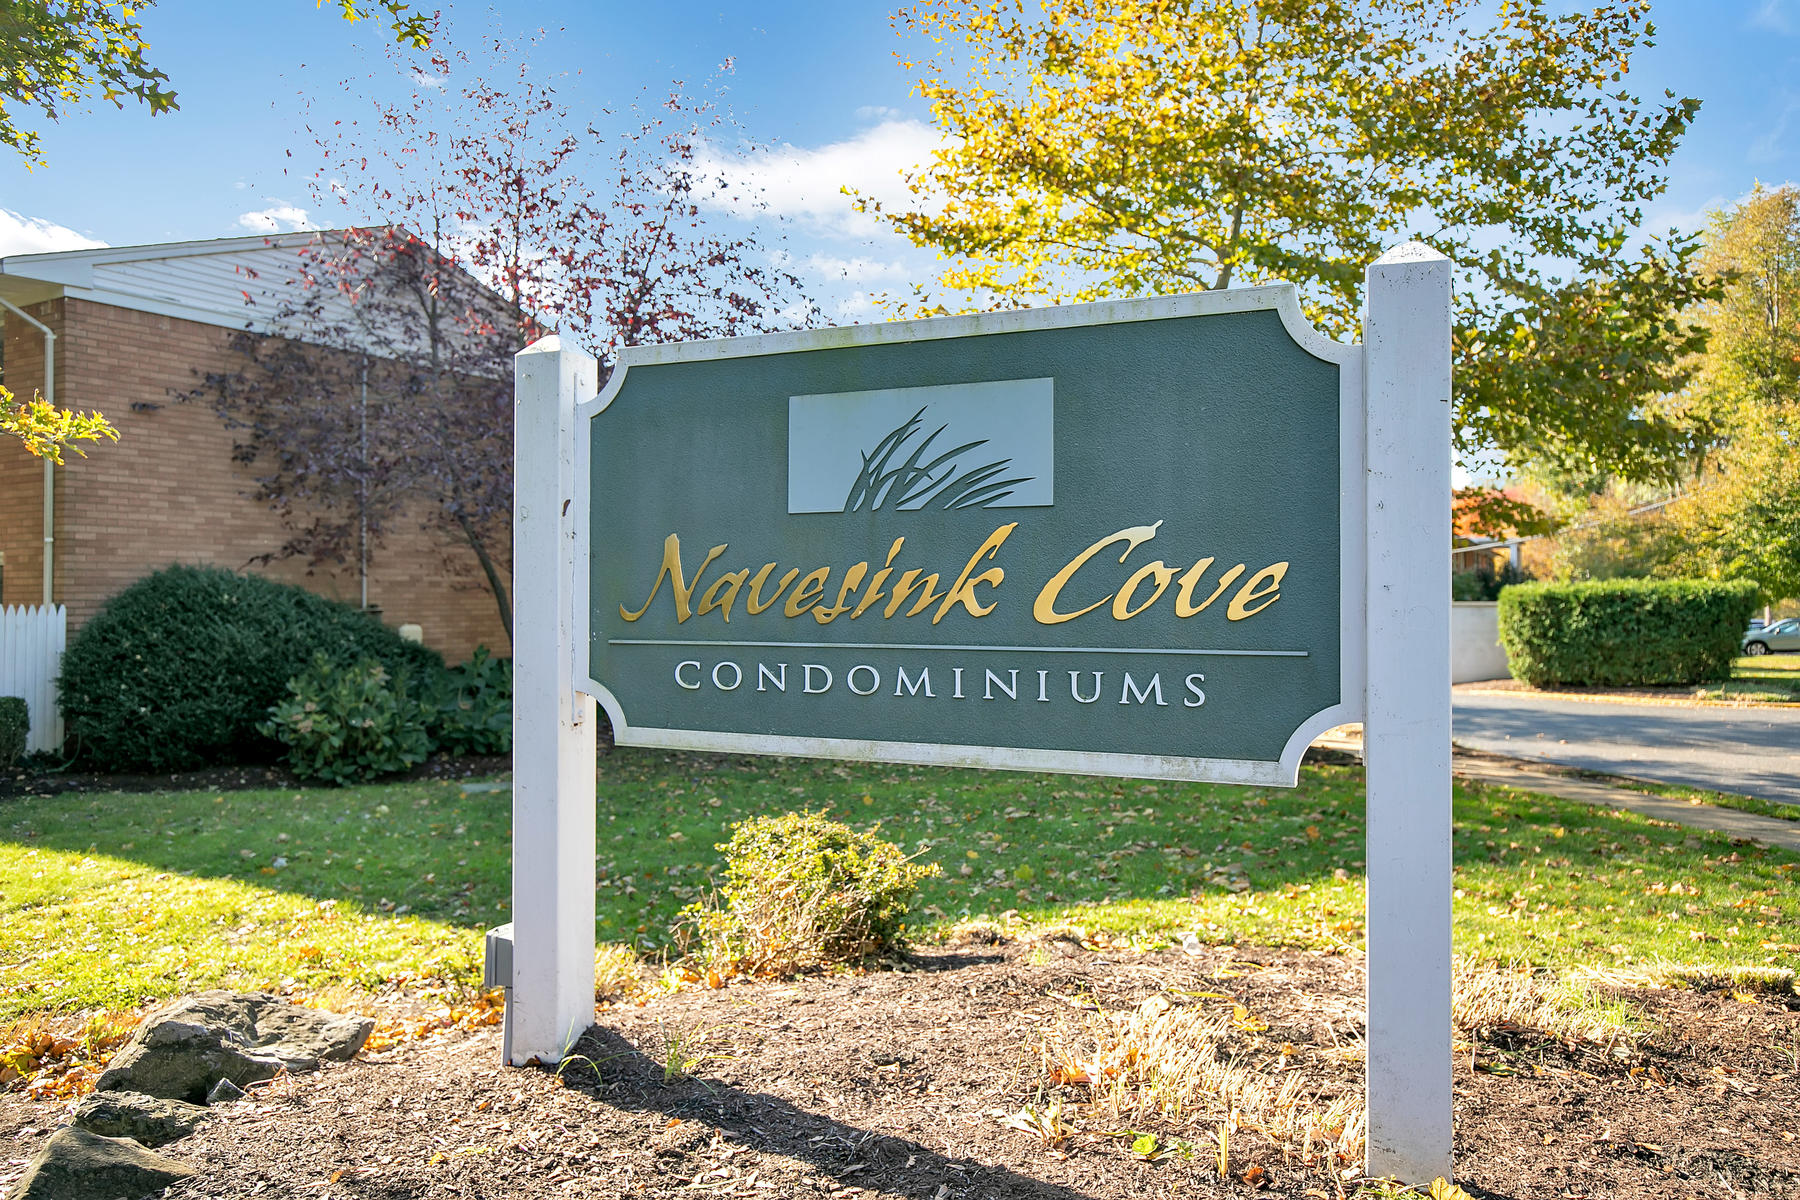 Condominium for Sale at Navesink Cove Condo 96 East Ave, unit 13, Atlantic Highlands, New Jersey 07716 United States